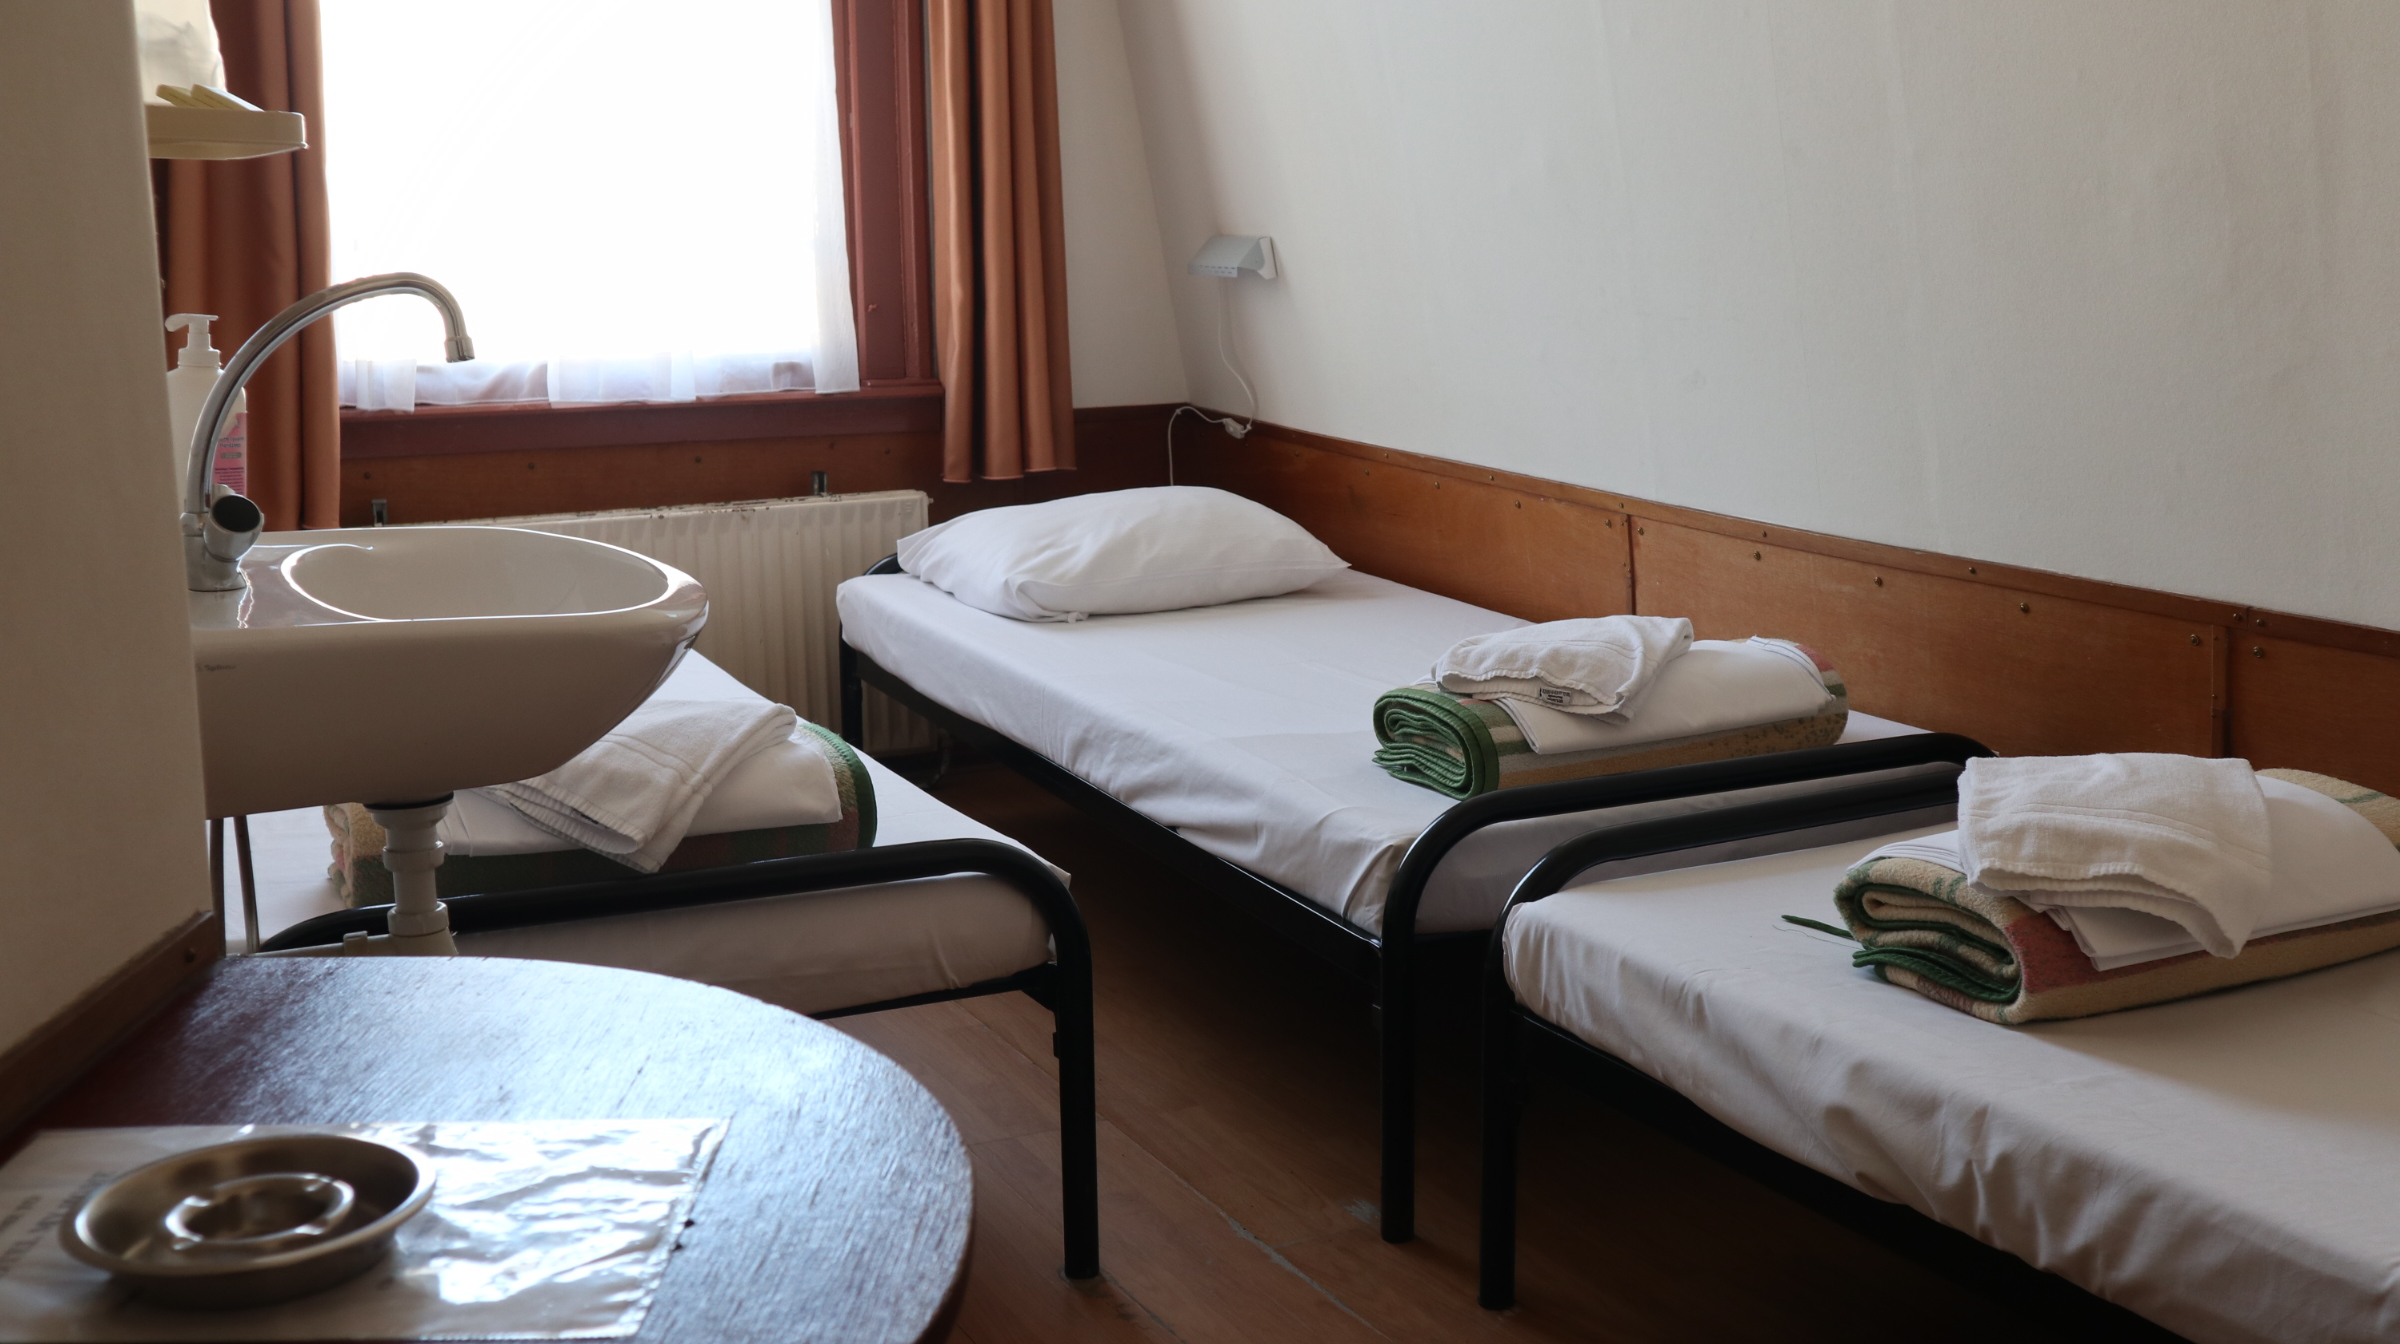 Four person room (4 single beds)